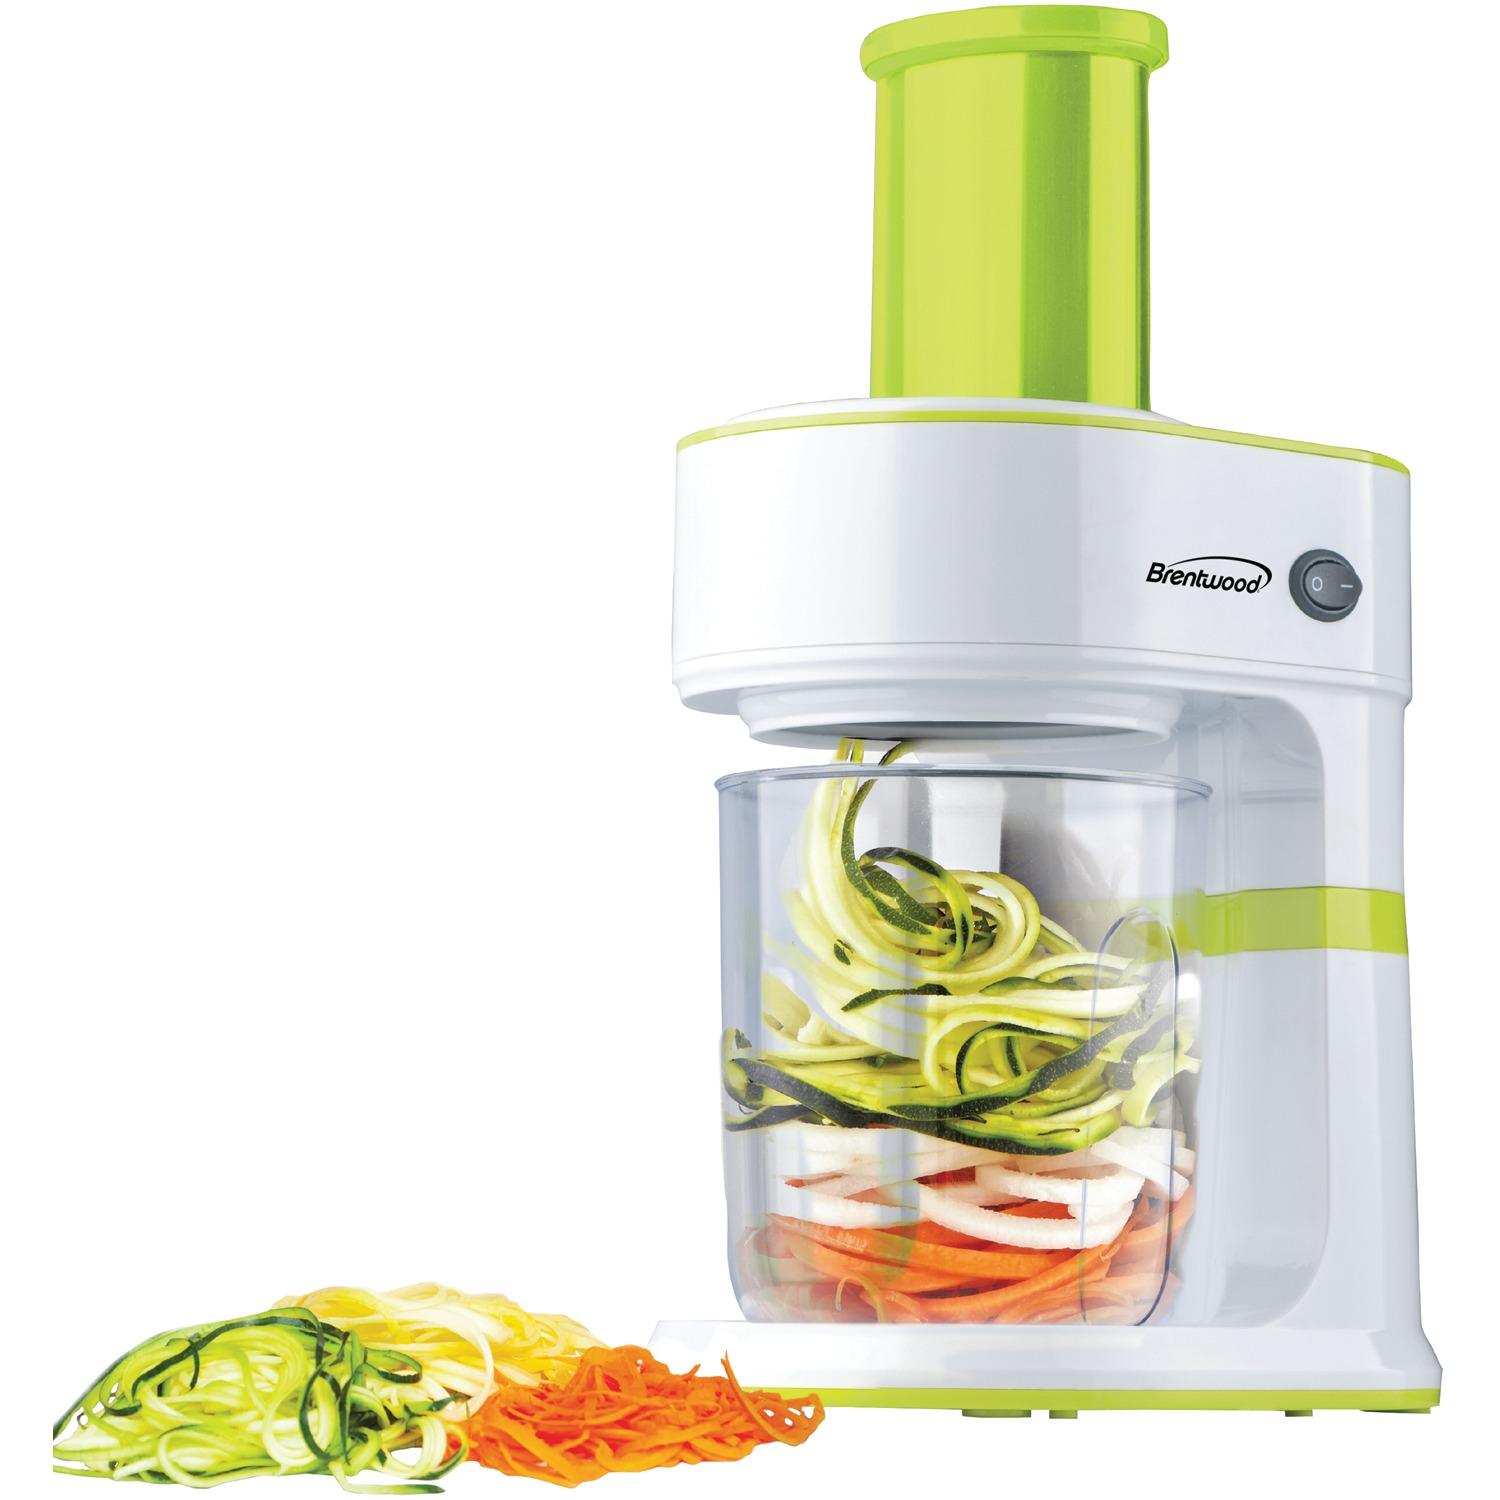 Brentwood Appliances FP-560G 5-cup Electric Vegetable Spiralizer & Slicer